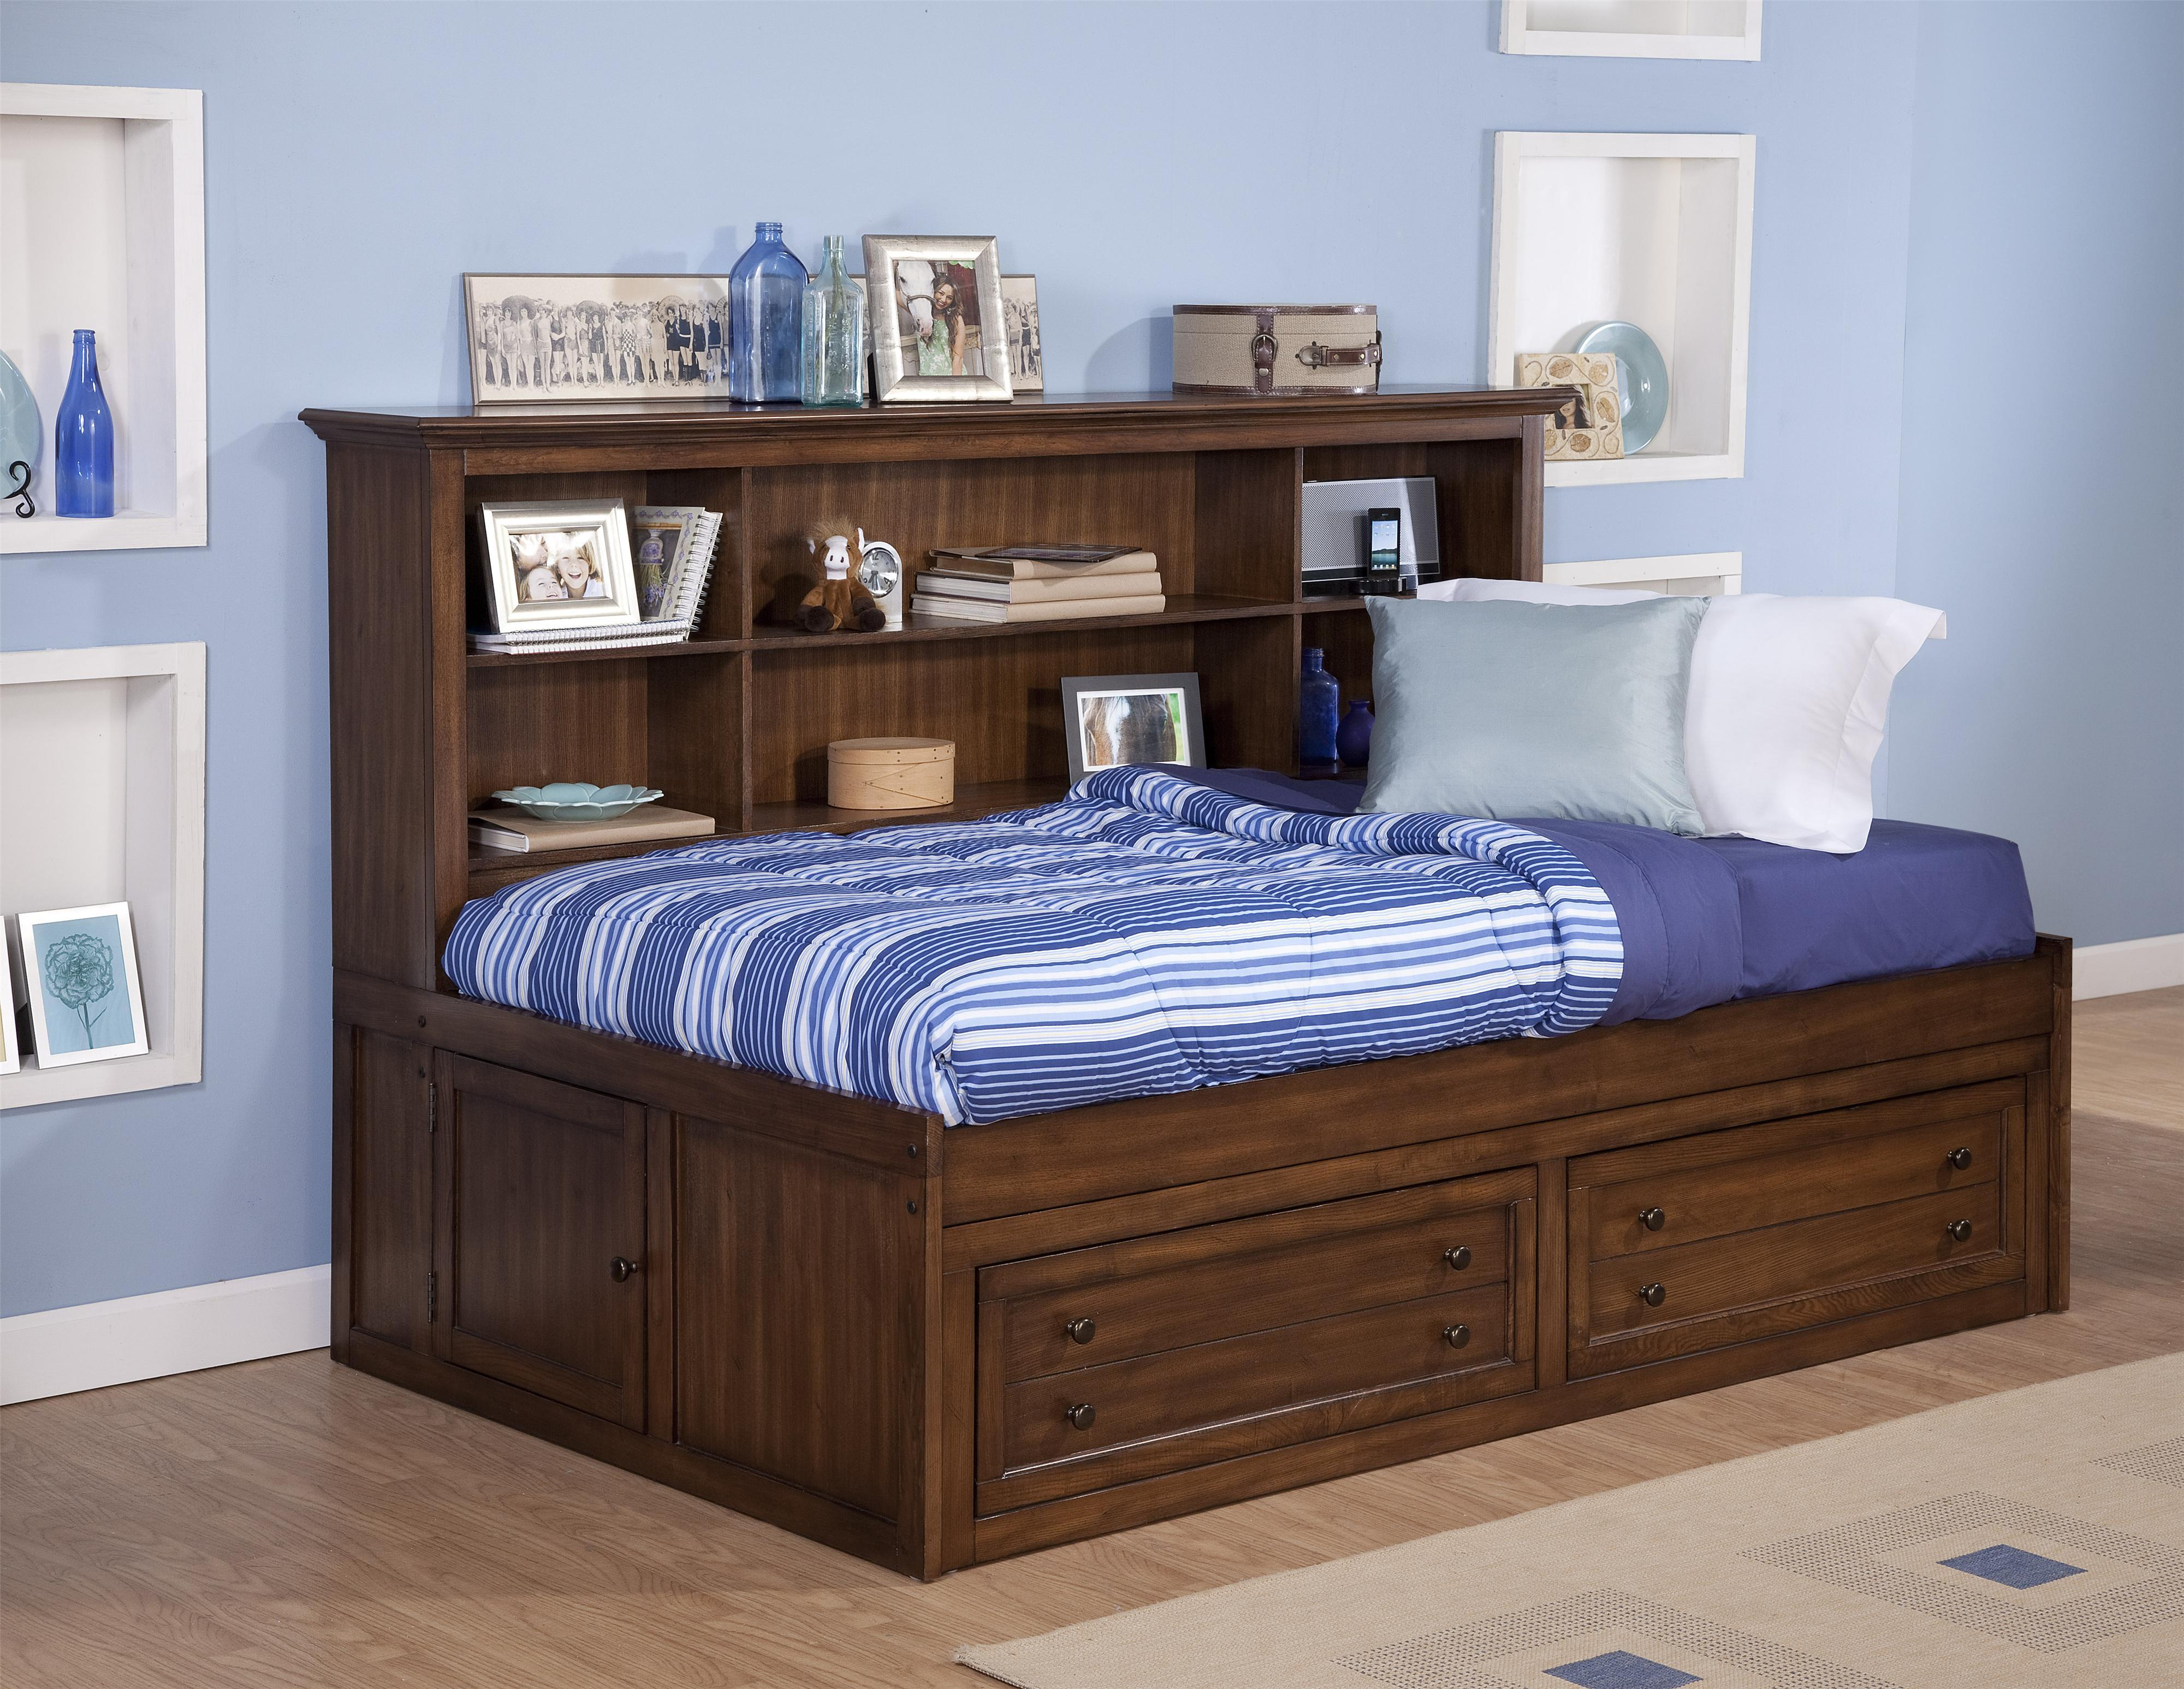 New Classic Logan Full Lounge Bed - Item Number: 05-100-412+432